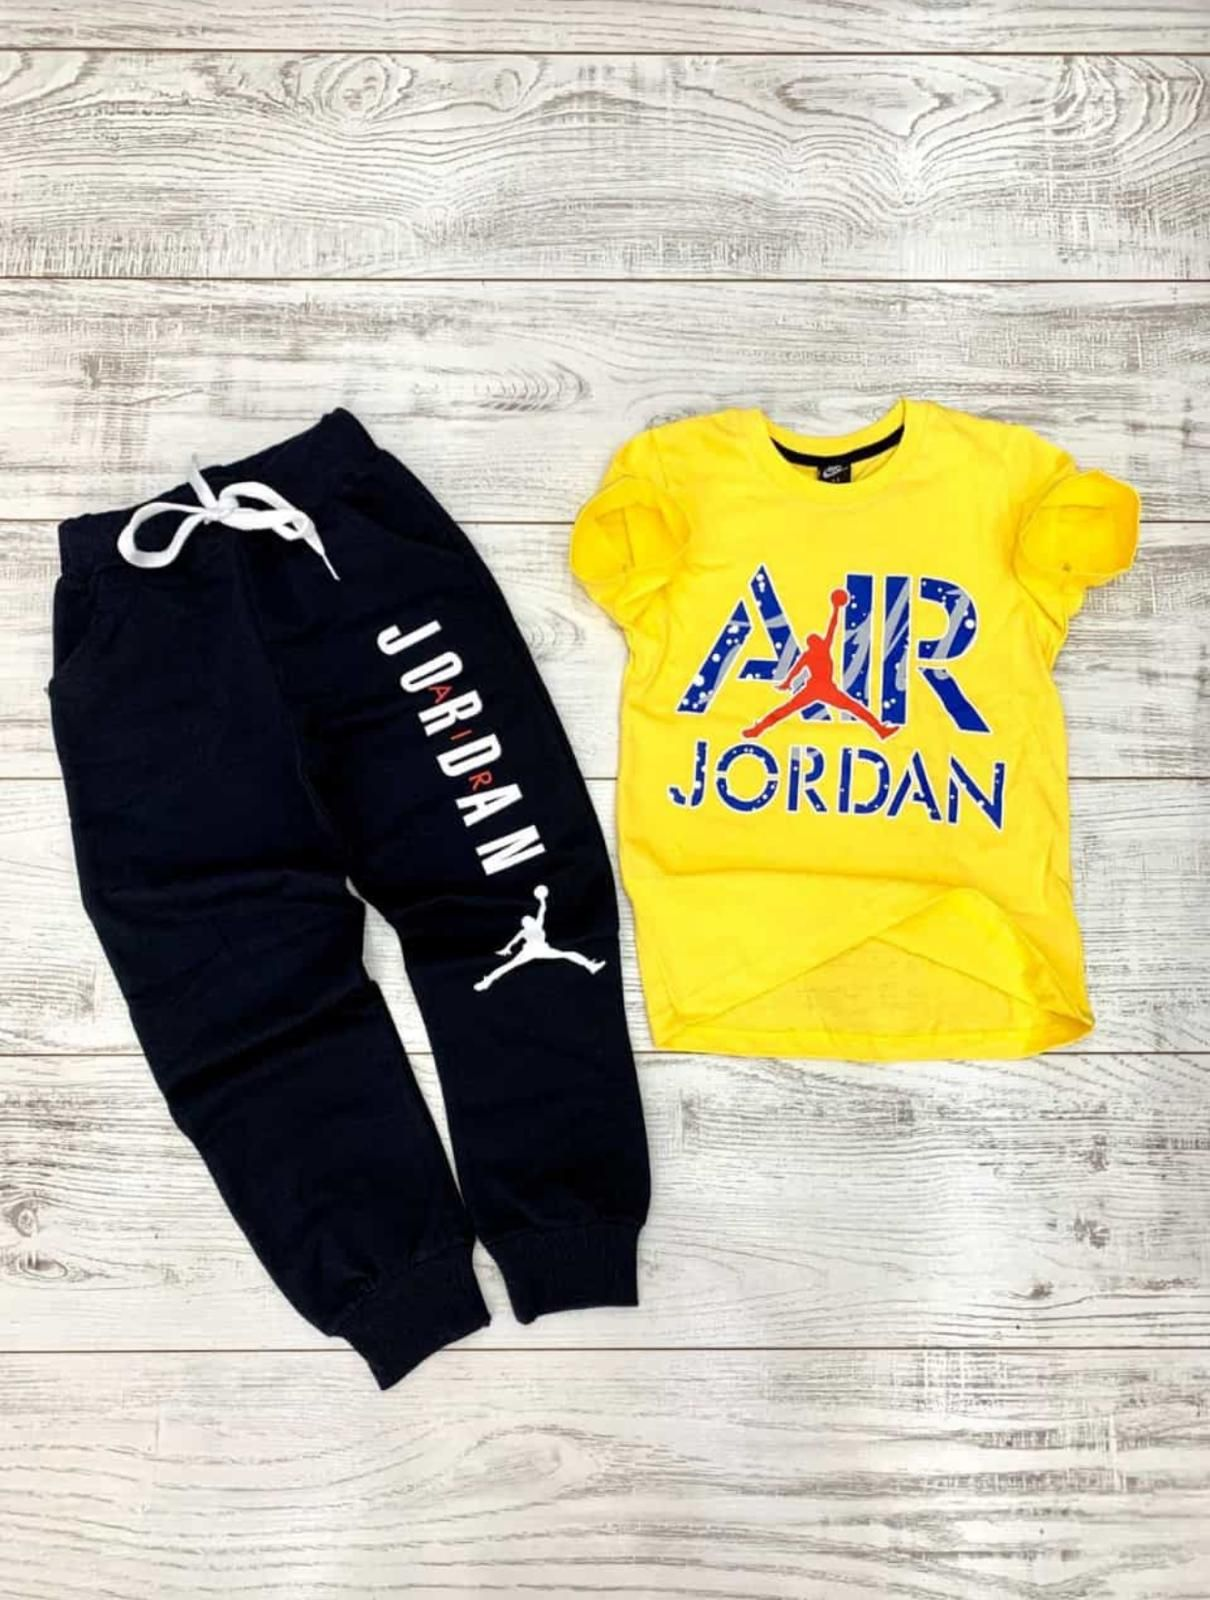 Air Jordan Truck For Boys Outfits From 1 12 Years In 2020 Girls